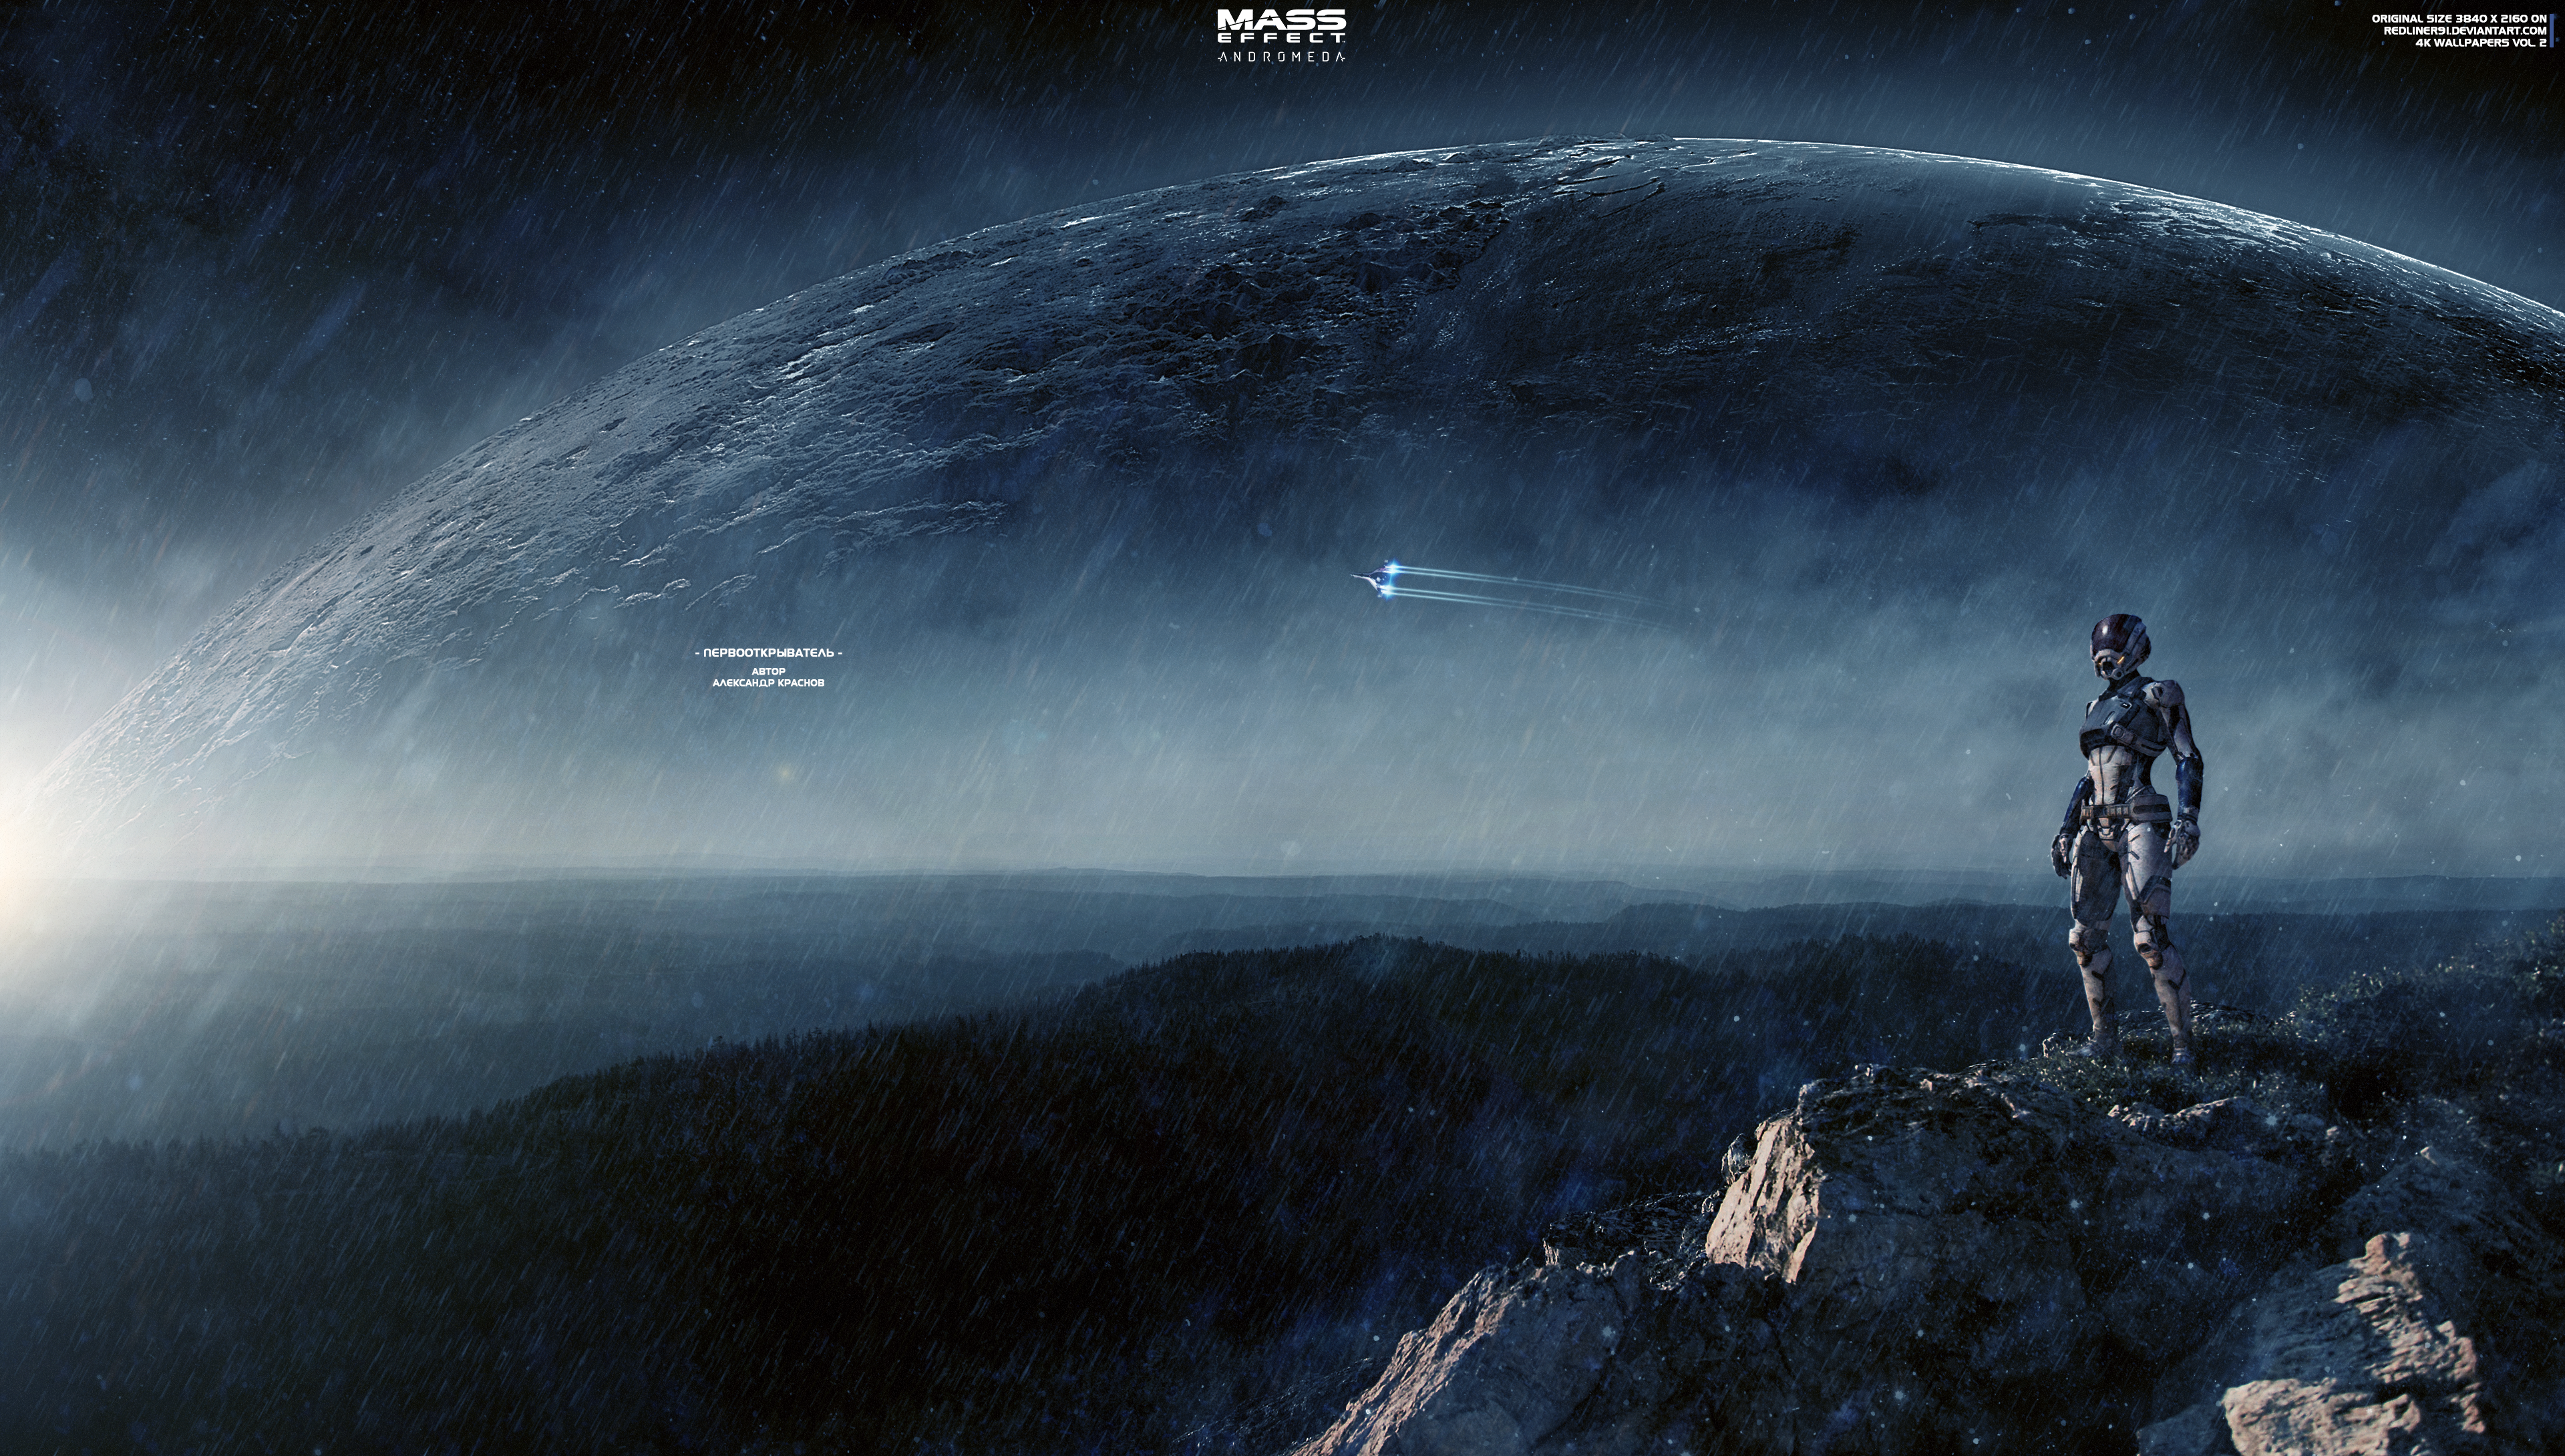 Mass Effect Background Png Free Mass Effect Background Png Transparent Images 58584 Pngio